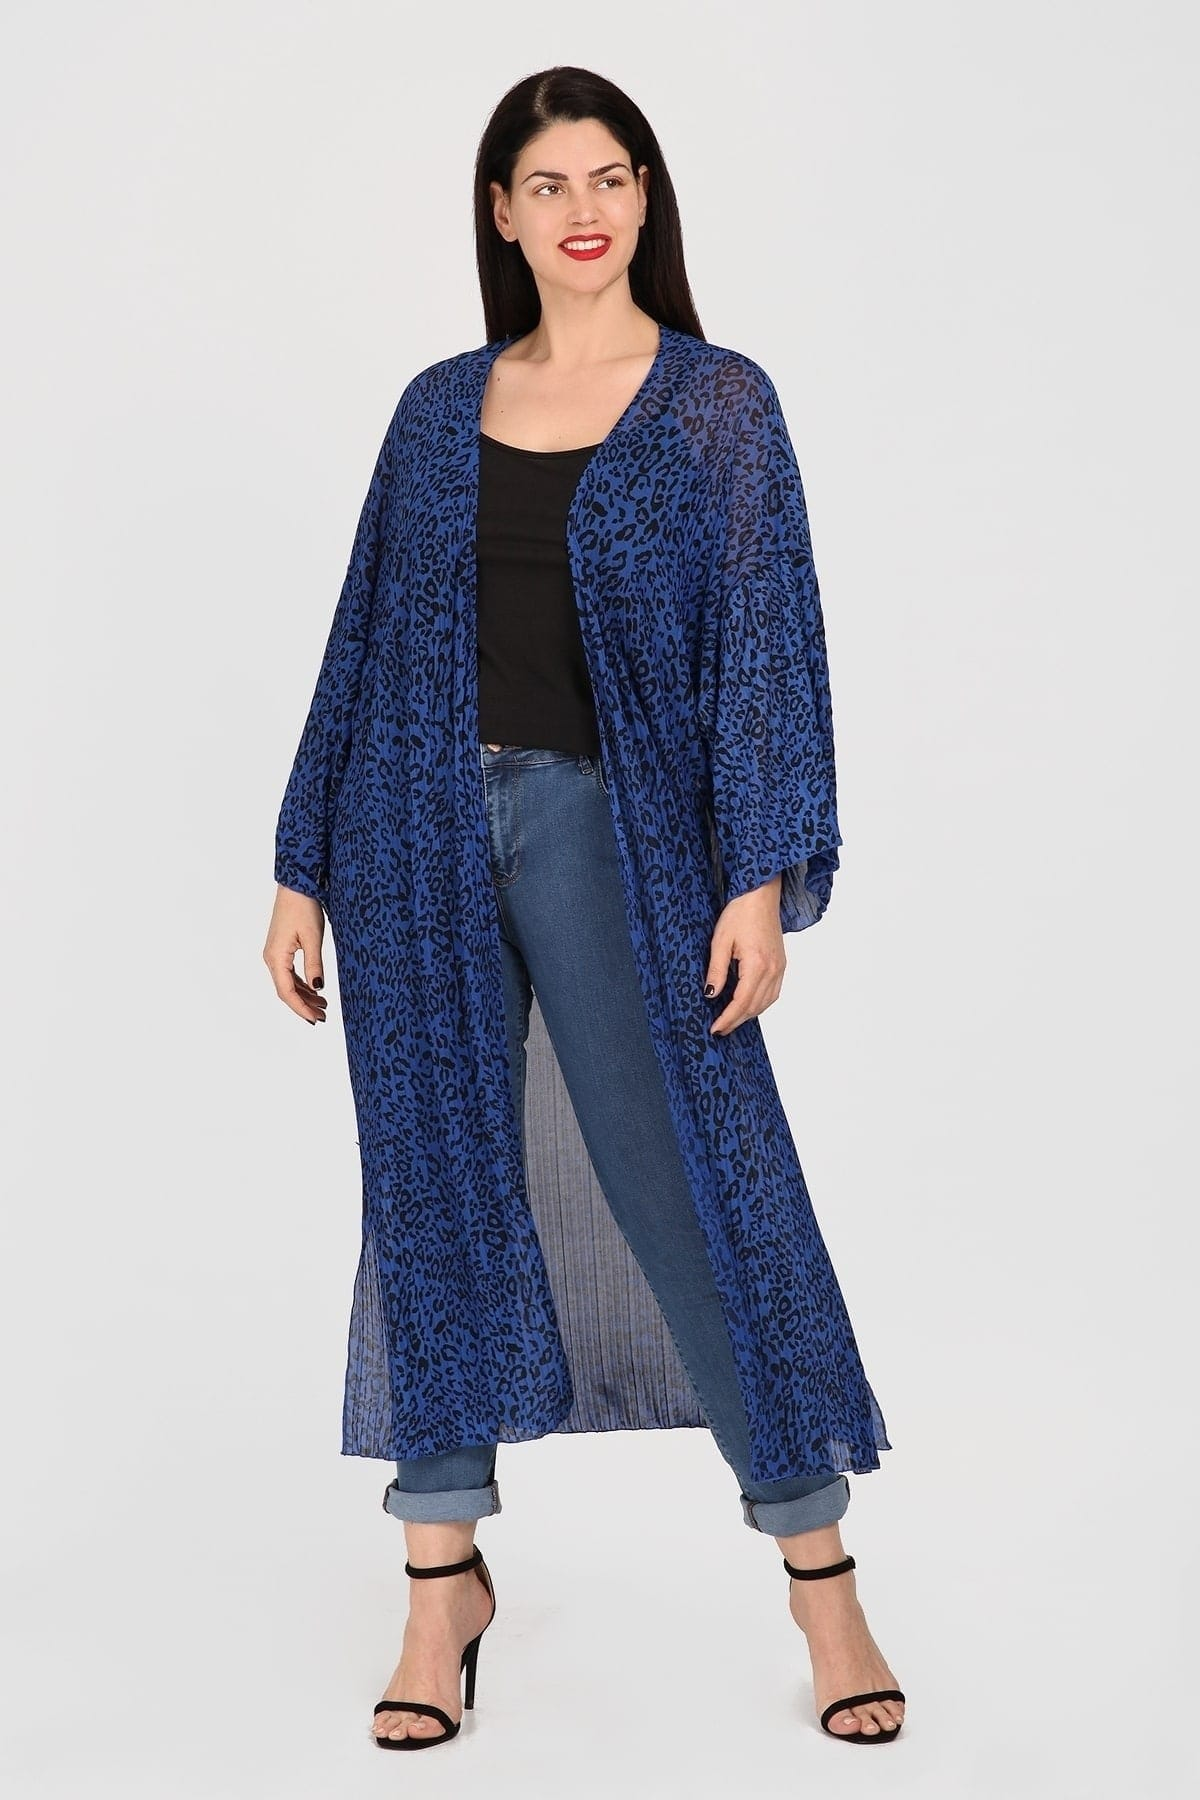 Longline semi-sheer kimono in pleated animal print